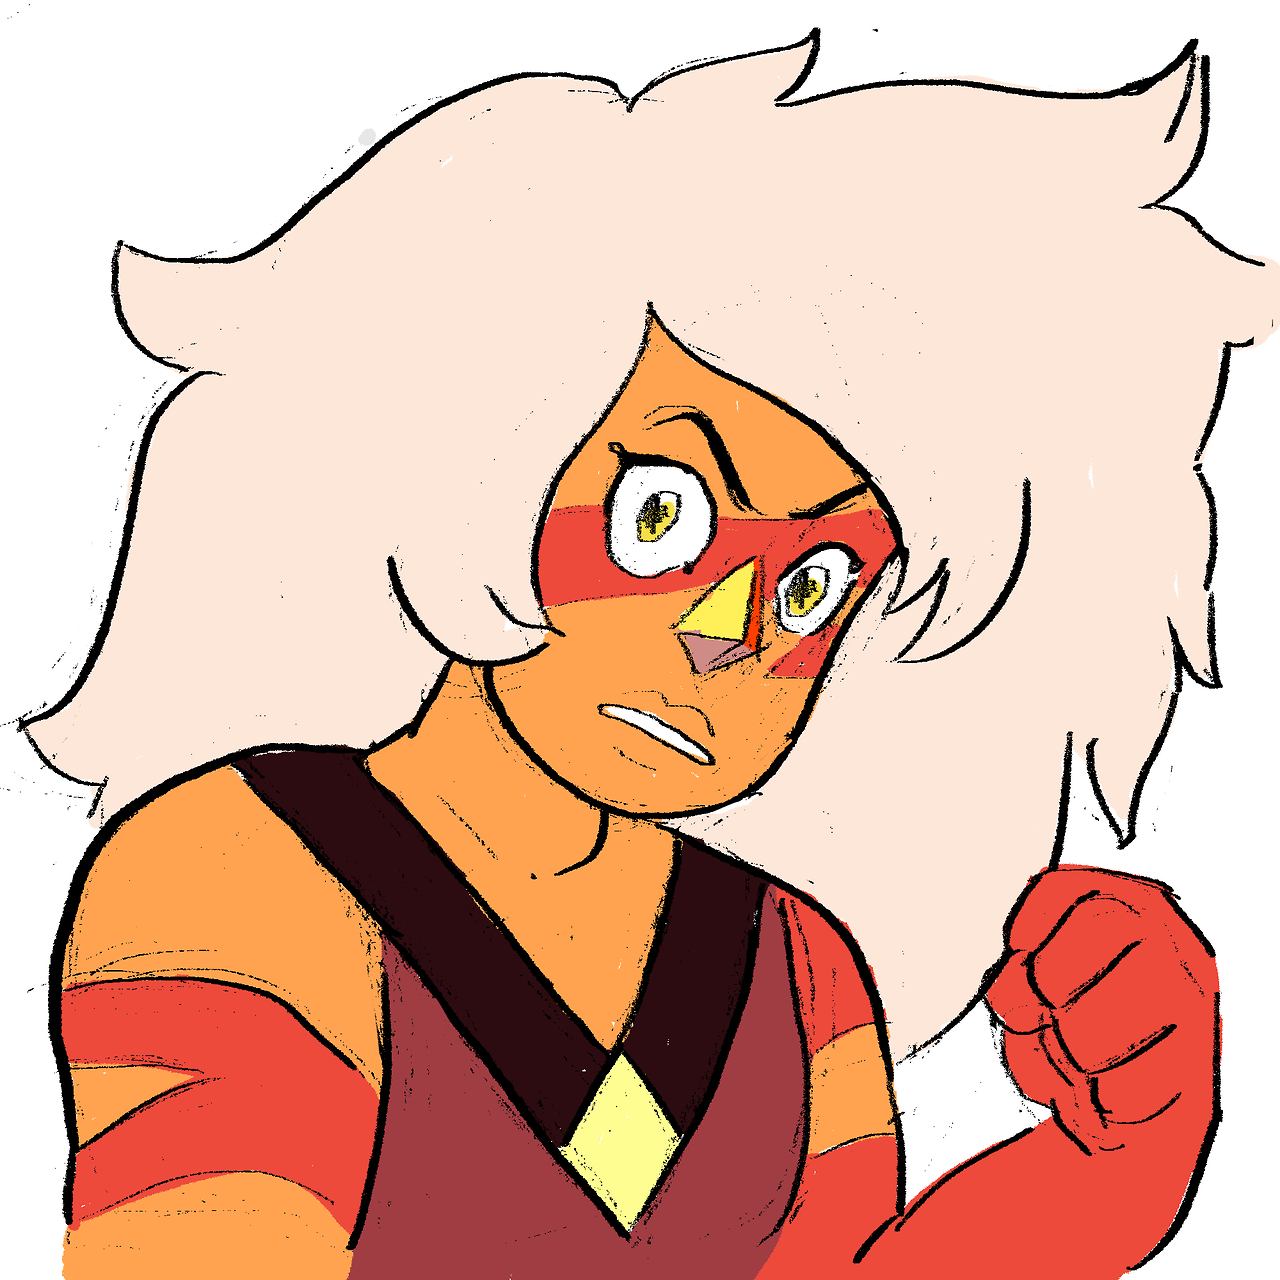 a lil jasper, for the soul (¬‿¬)